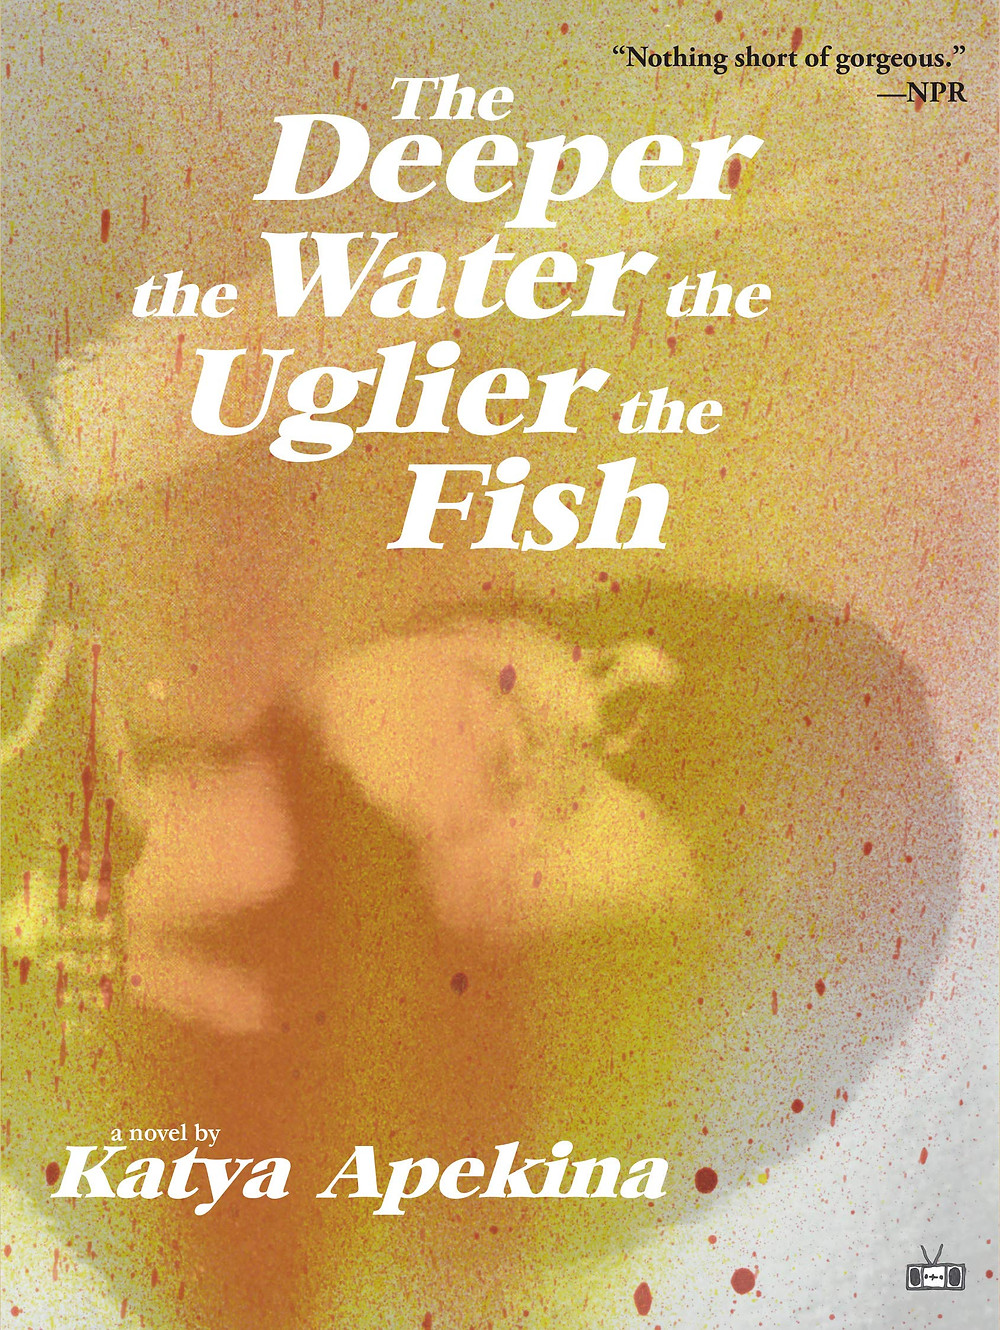 The Deeper the Water, The Uglier the Fish by Katya Apekina